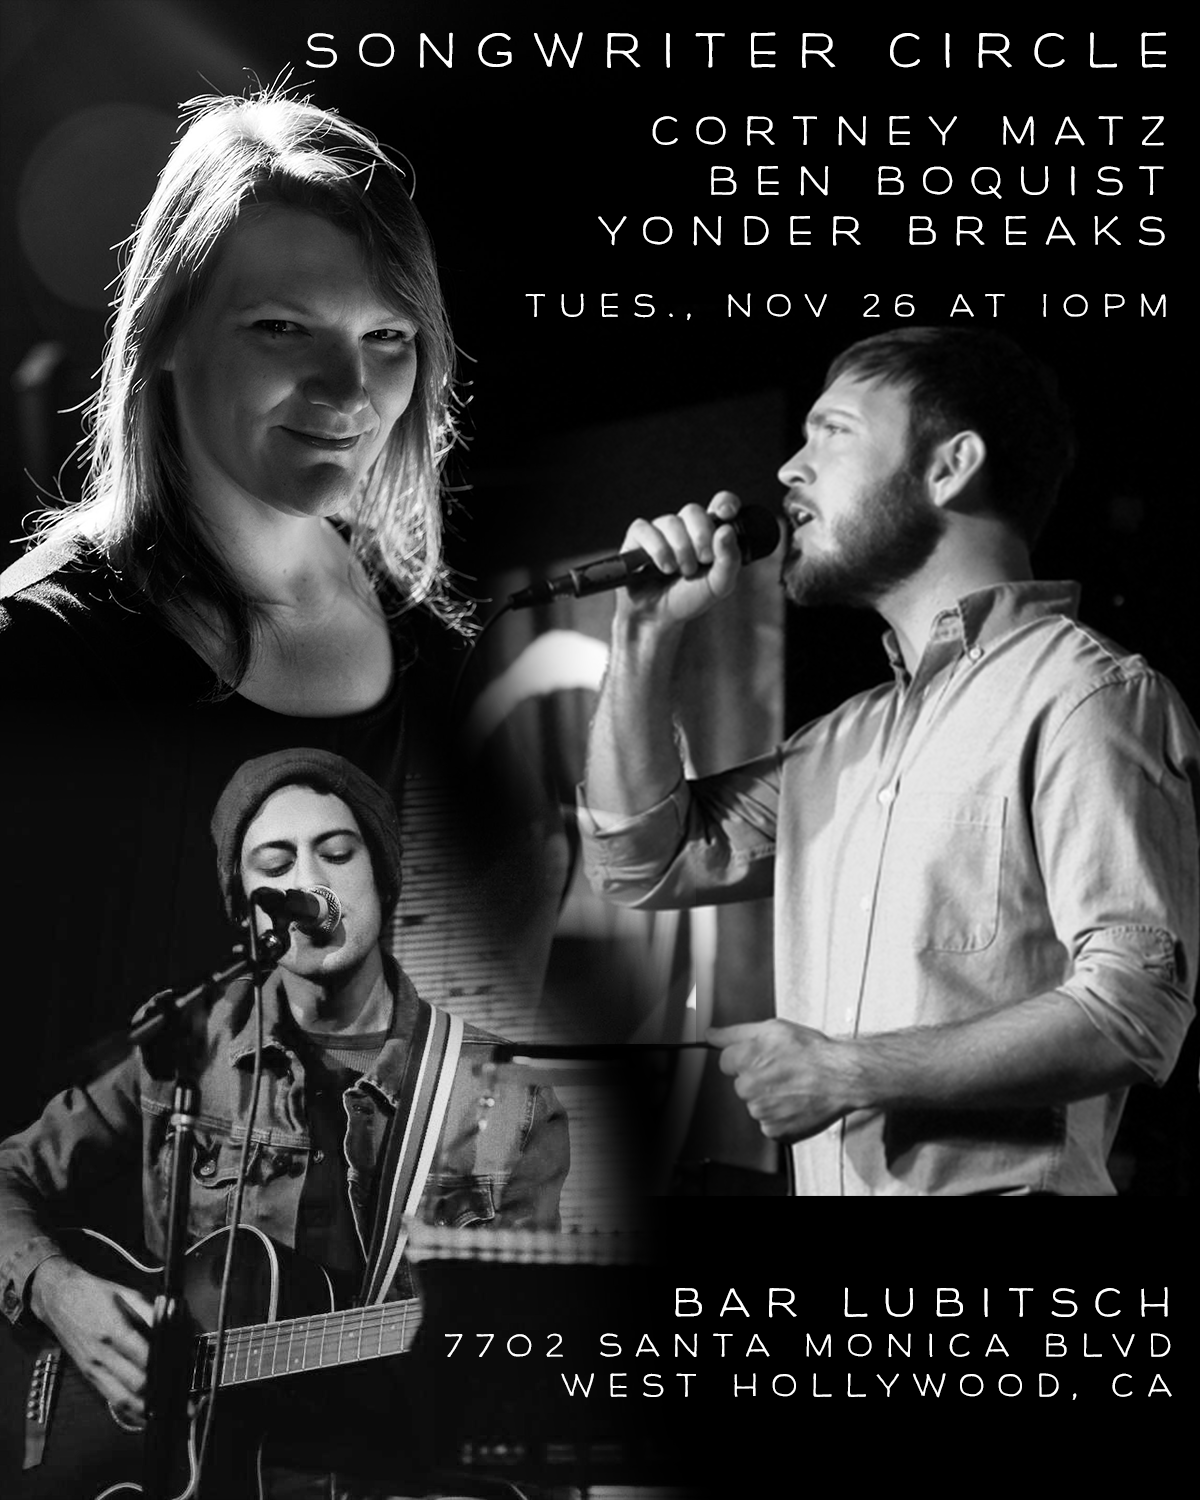 Songwriter Round with Cortney Matz, Ben Boquist and Yonder Breaks